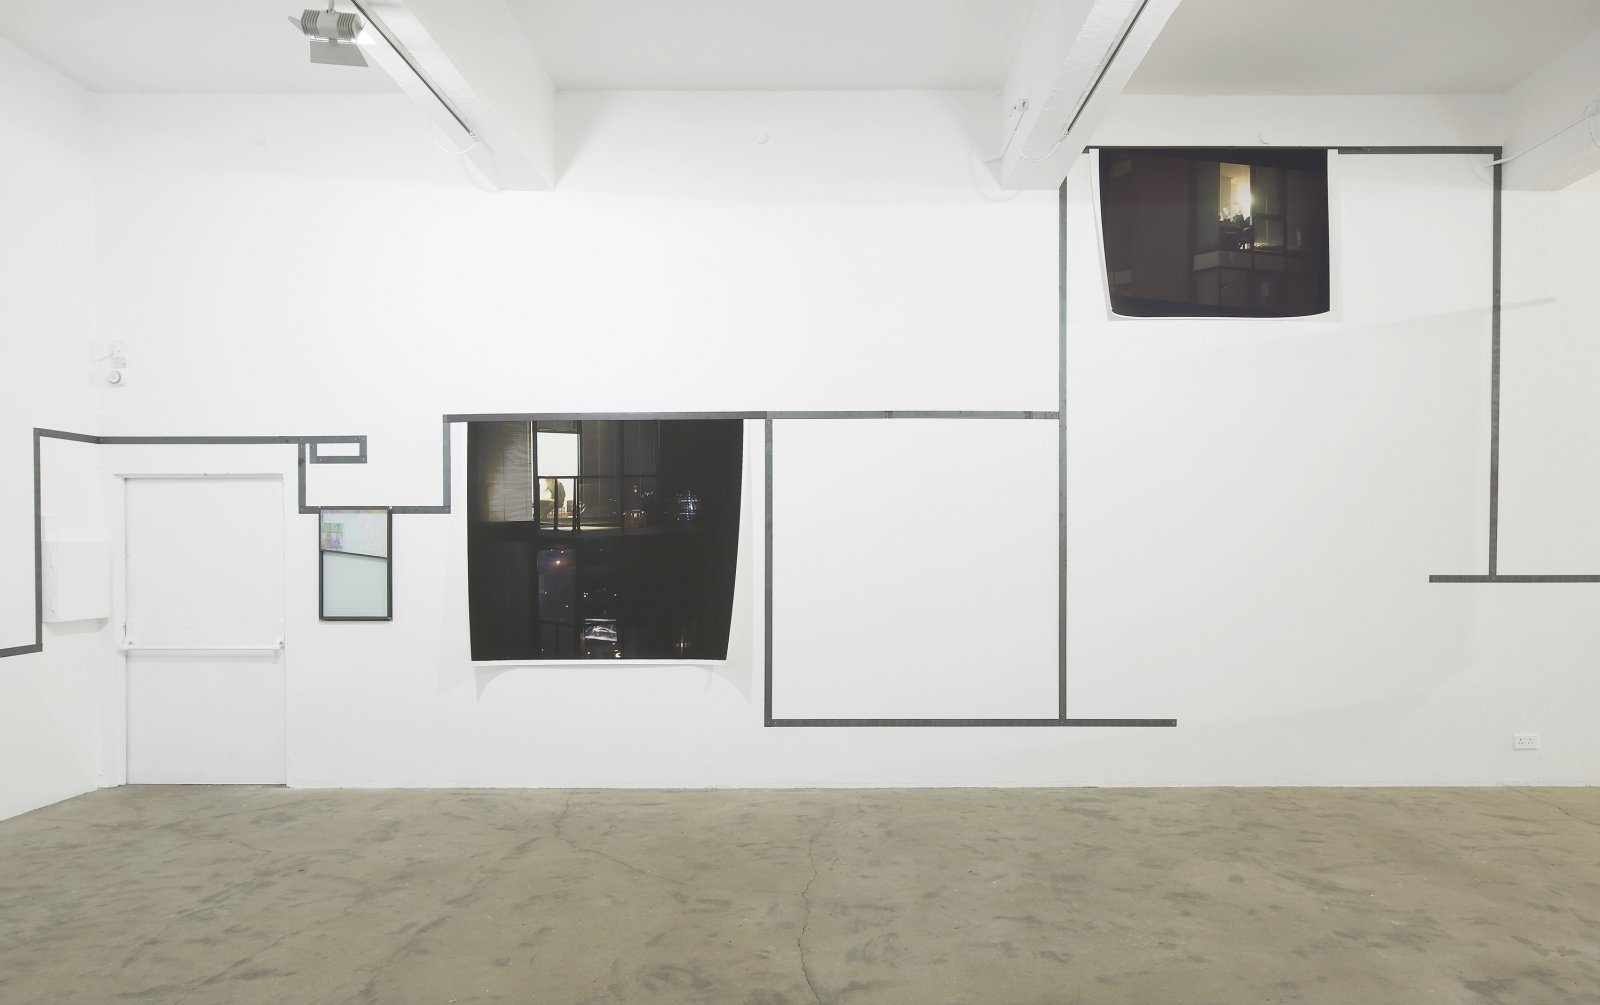 Christina Mackie, Us, The Residents, 2011–2012, mixed media, dimensions variable. Installation view, Painting the Weights, Chisenhale Gallery, London, UK, 2012 by Christina Mackie